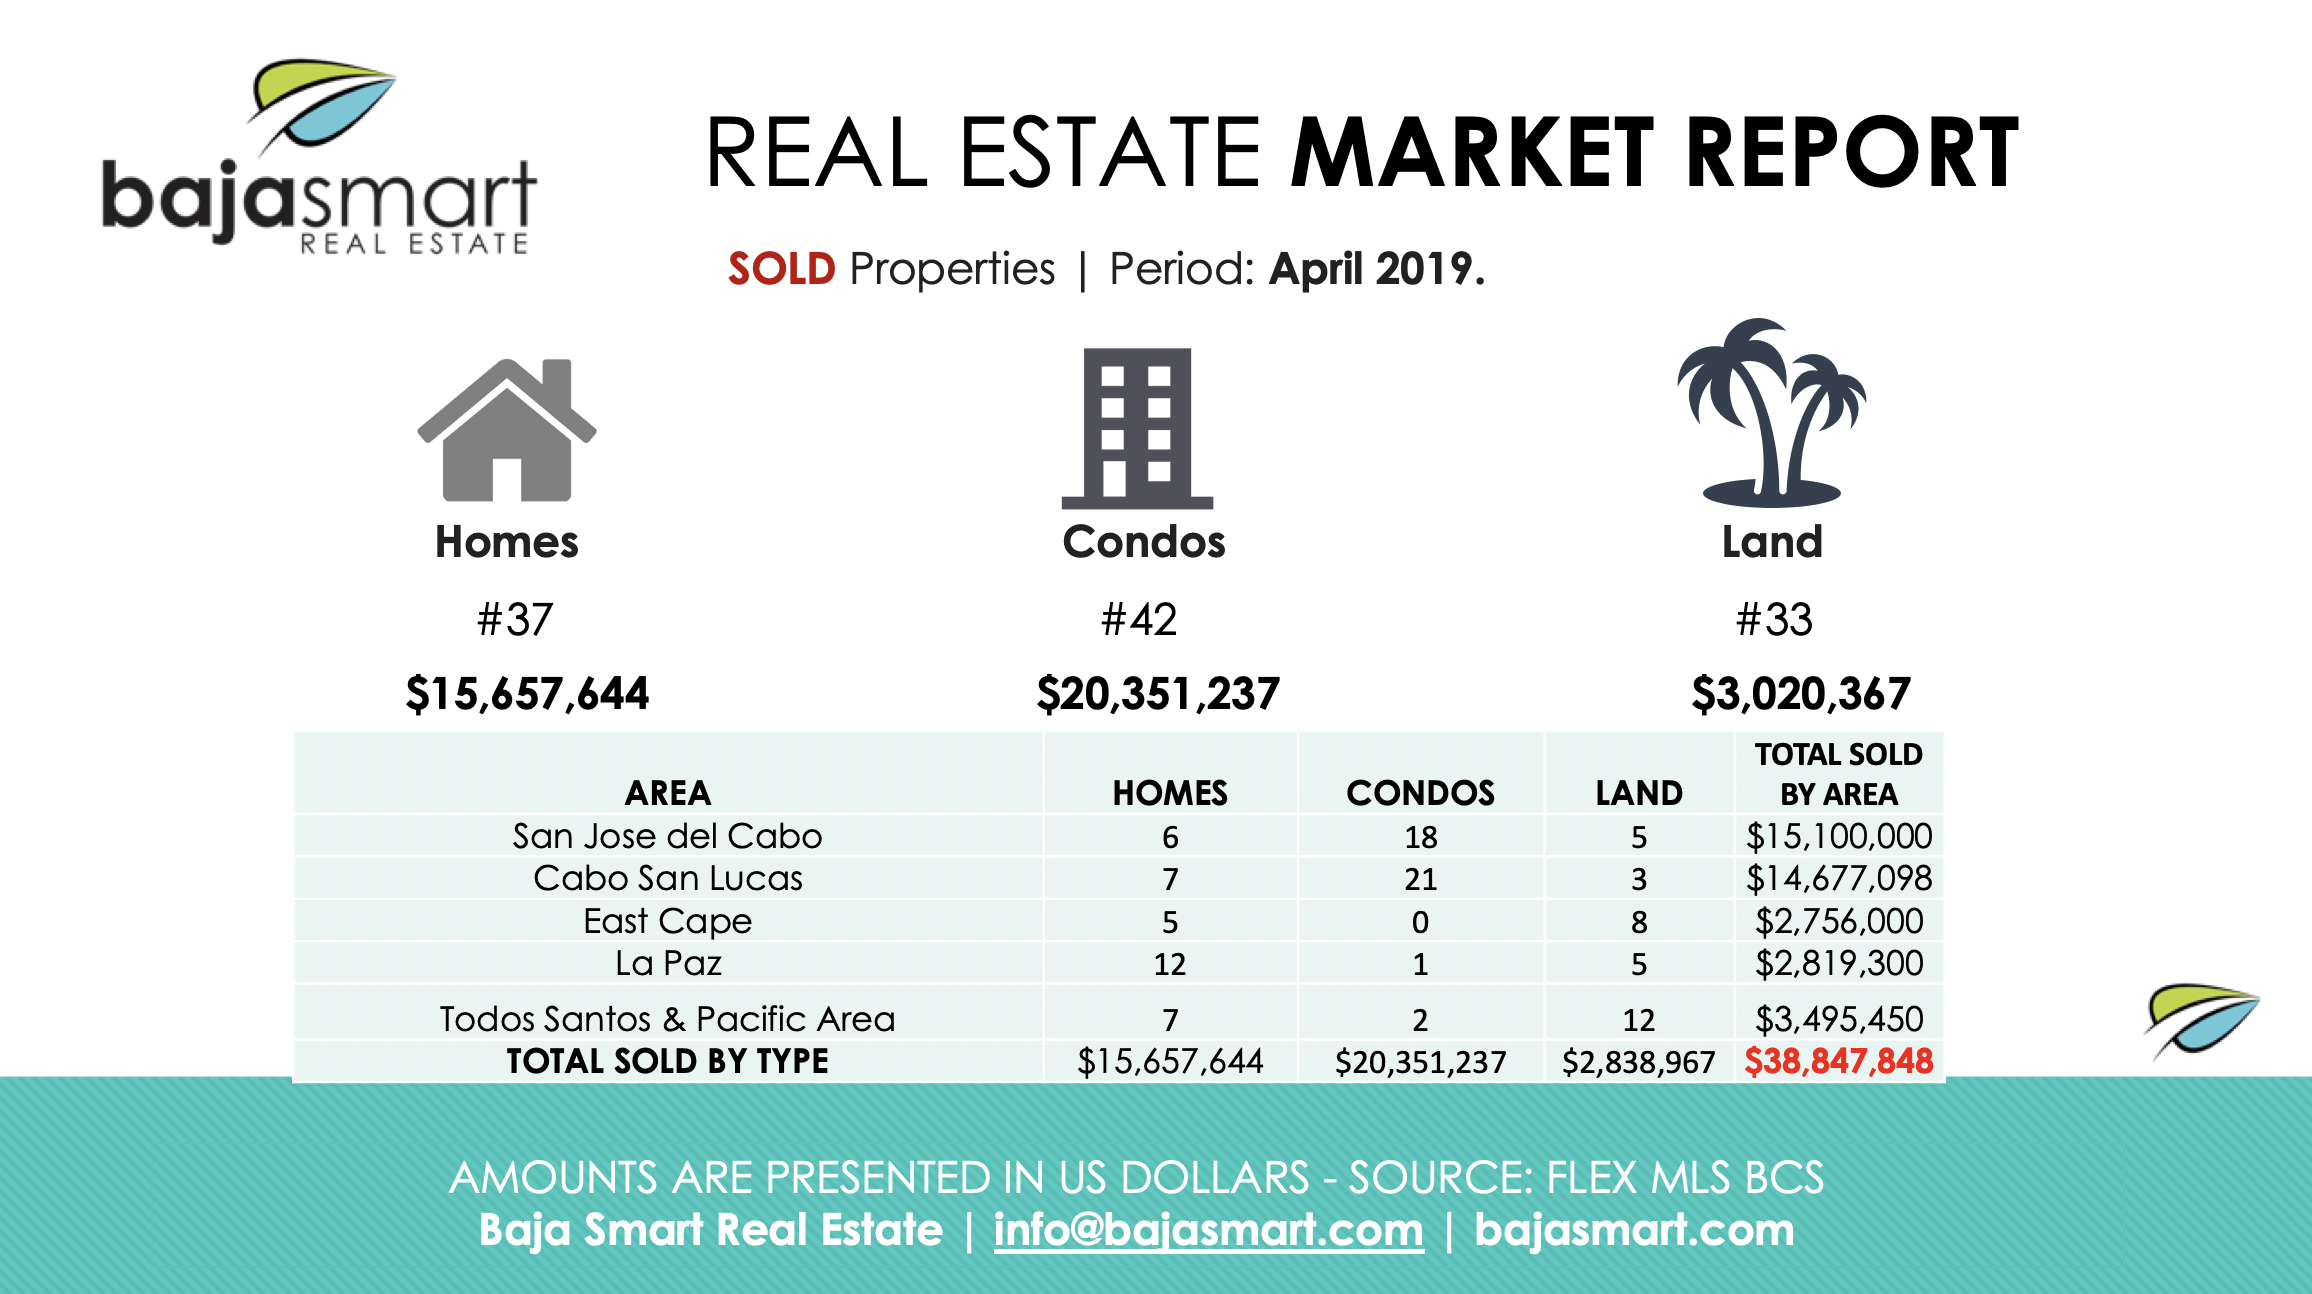 cabo sold properties april 2019